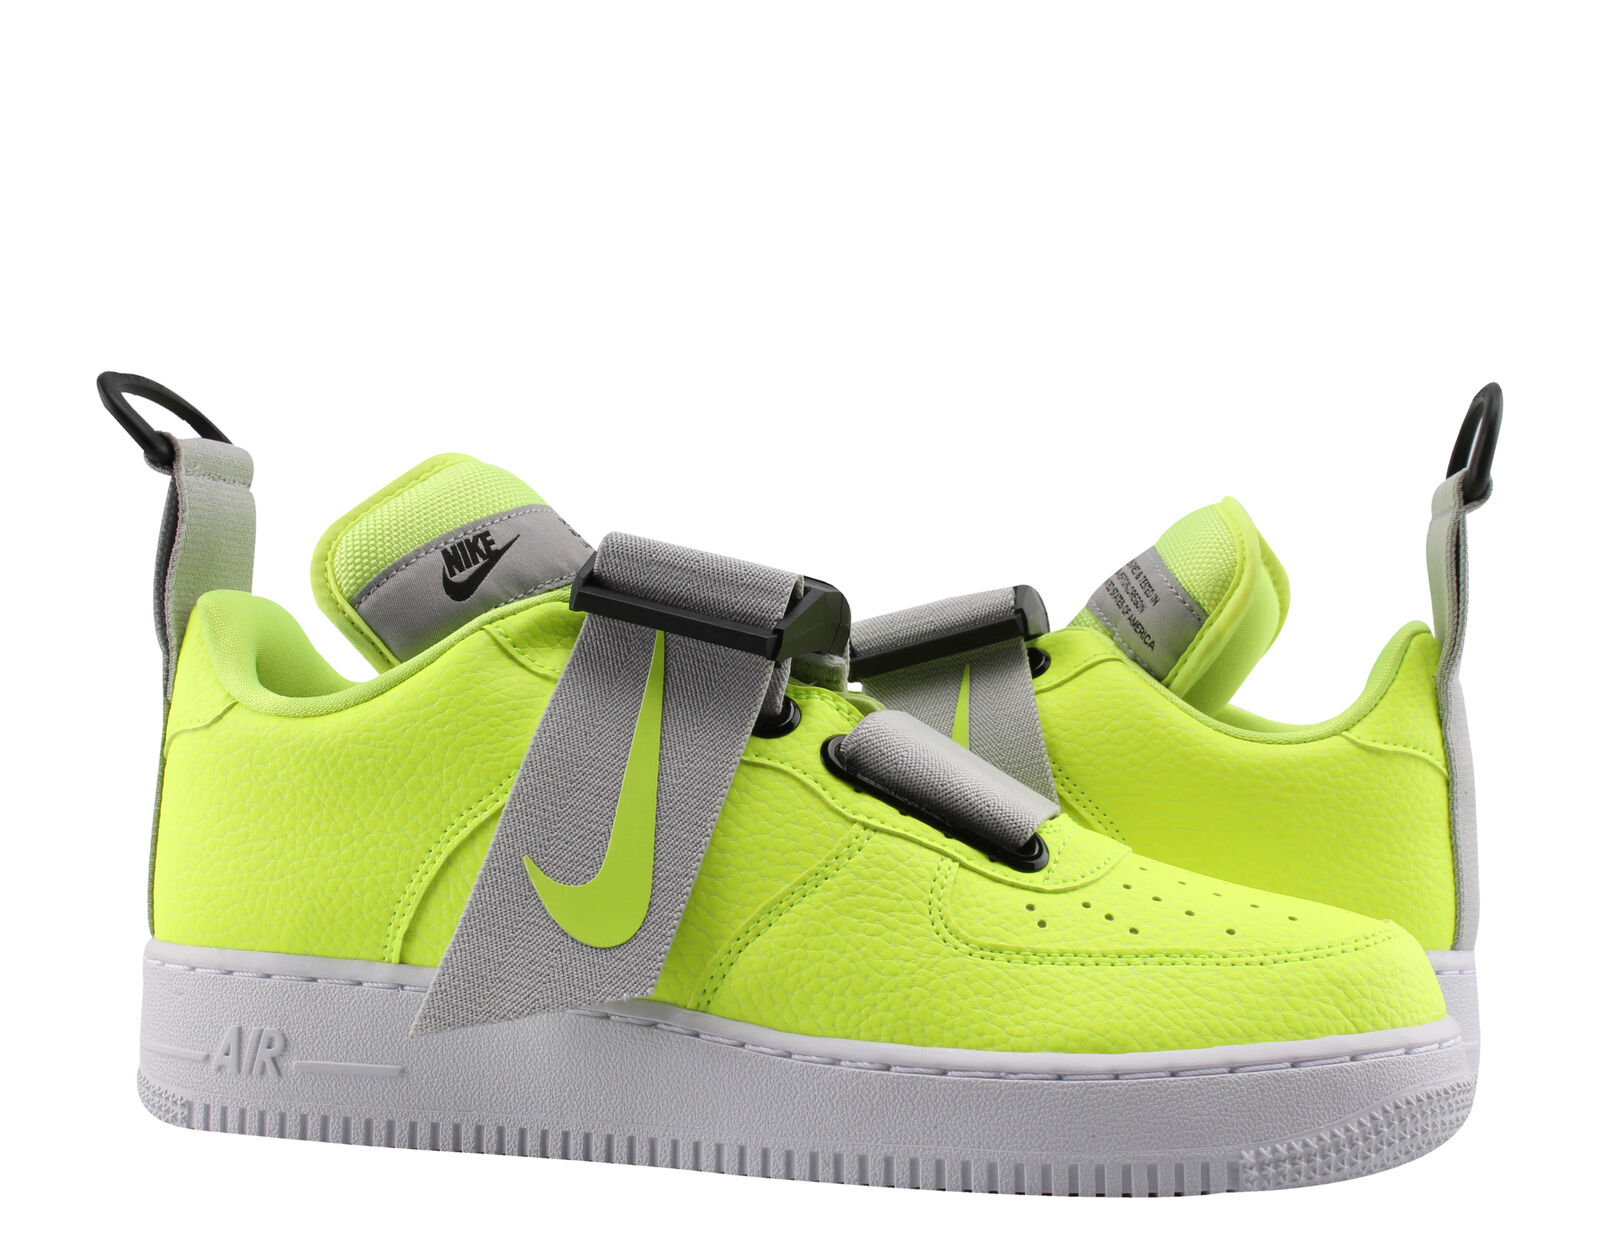 88278c42a8cfe Nike Nike Nike Air Force 1 Utility Volt White-Black Men s Basketball shoes  AO1531-. About  Success Stories  Services  Nike React Element 55 Gym Red ...